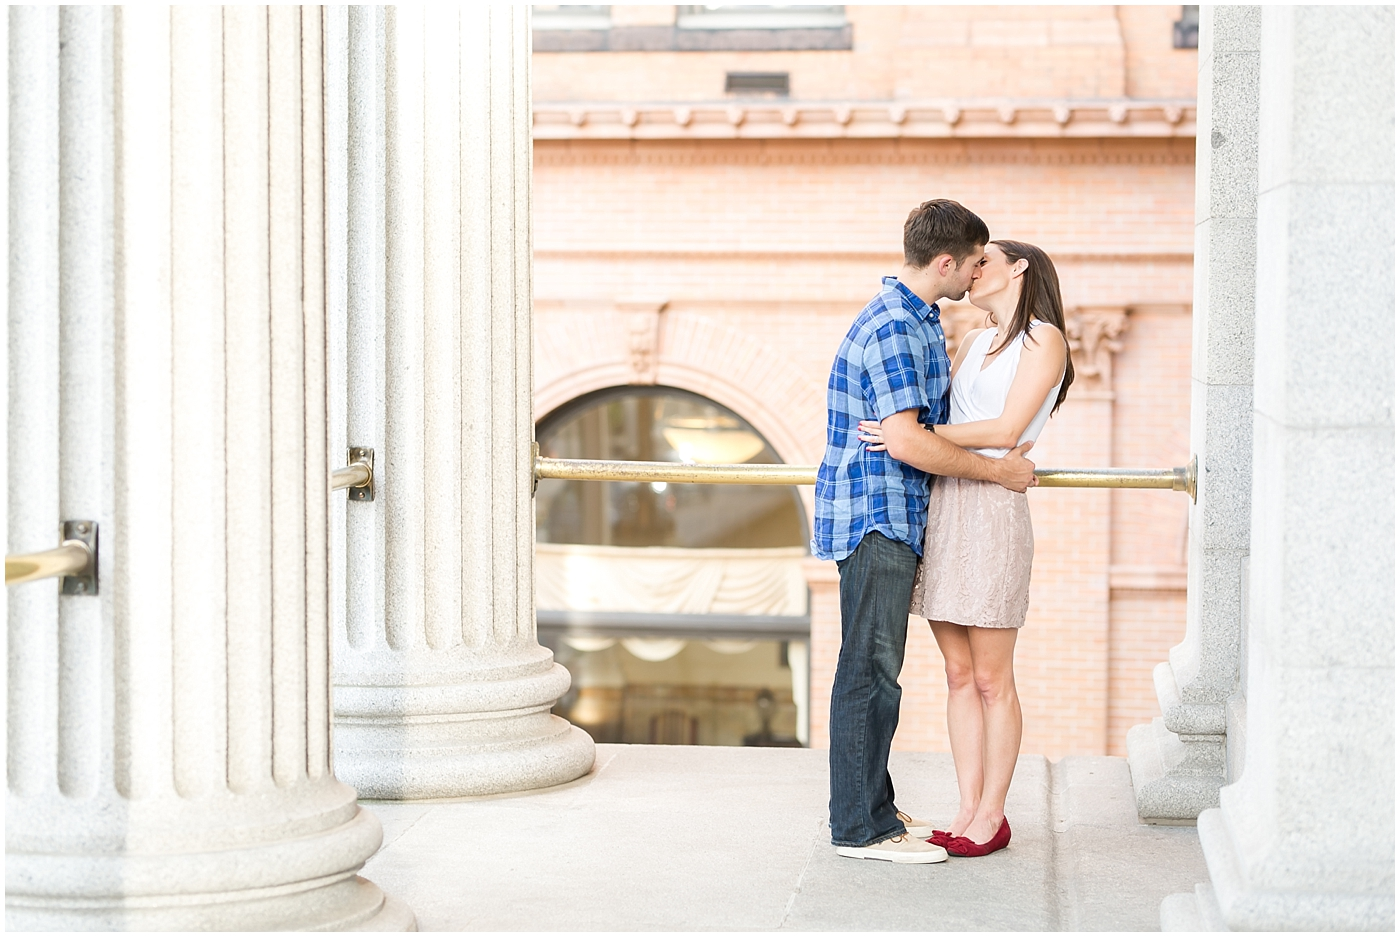 downtown norfolk virginia engagement photography